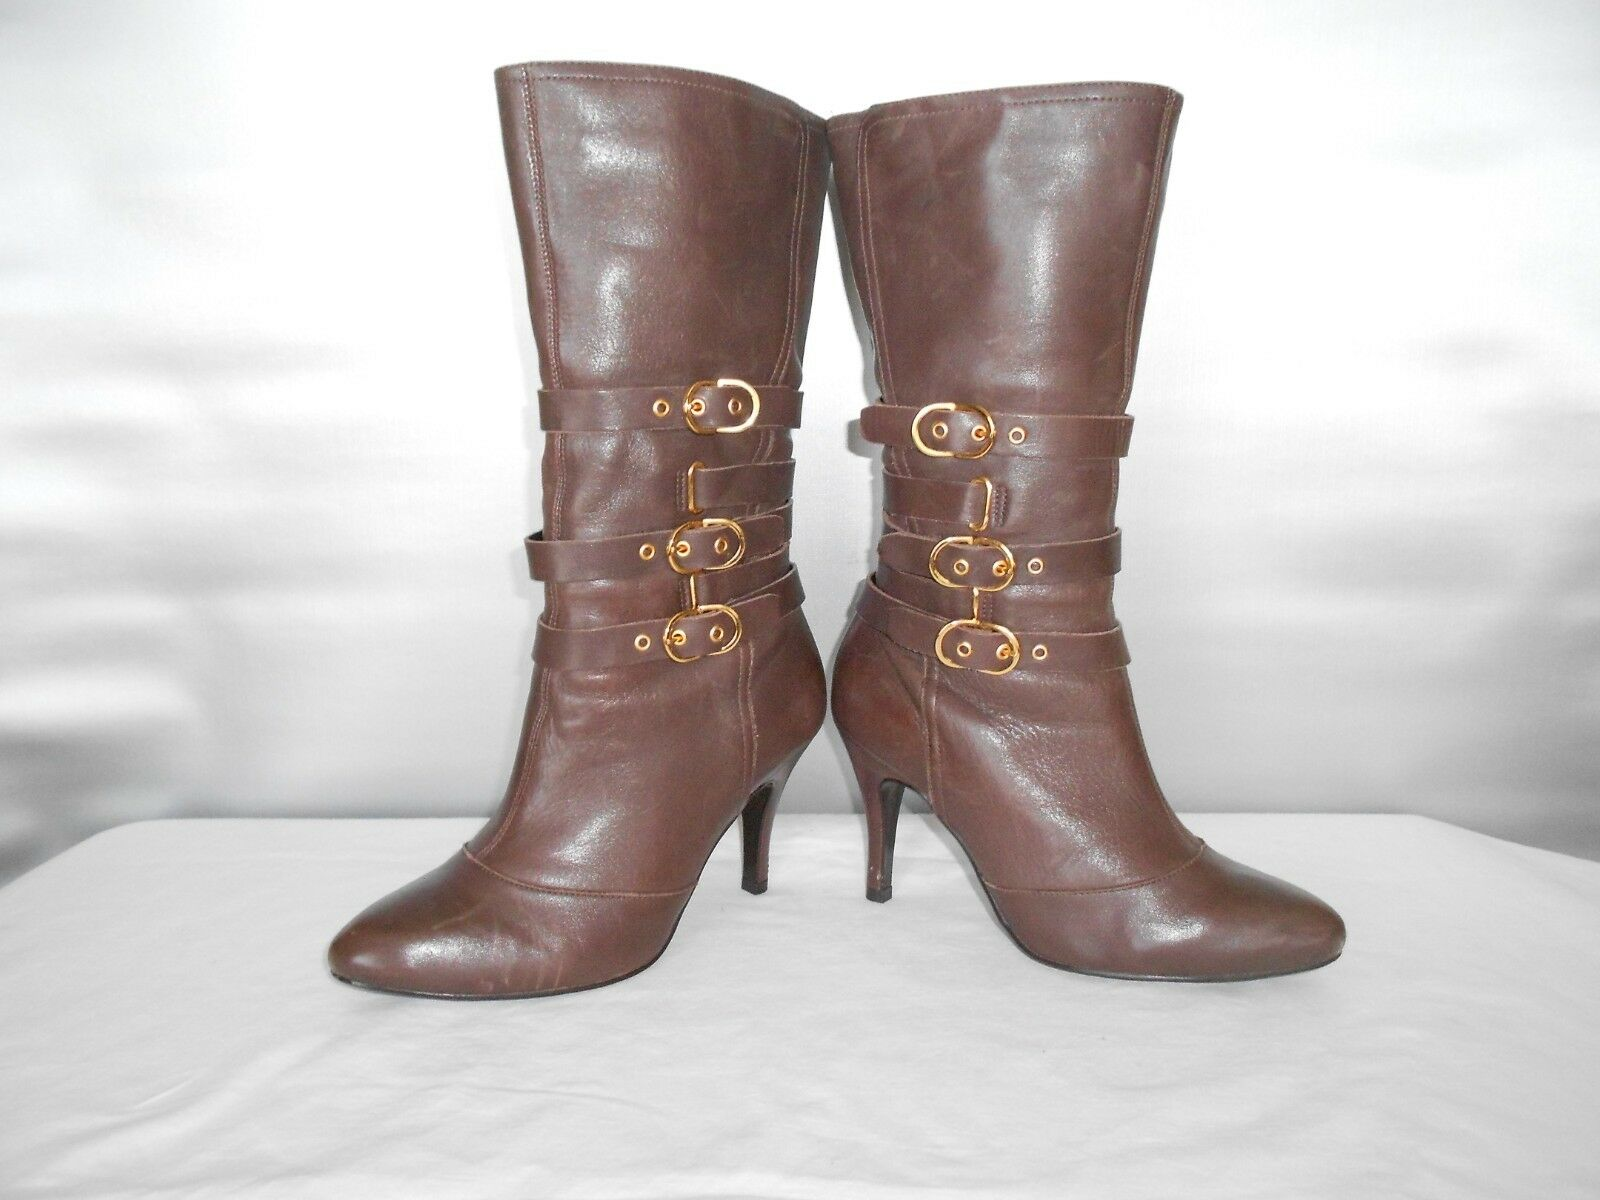 739404a3771 Women's Bakers Kelsey Brown Leather Fashion Mid Calf Boots Size 7.5 ...